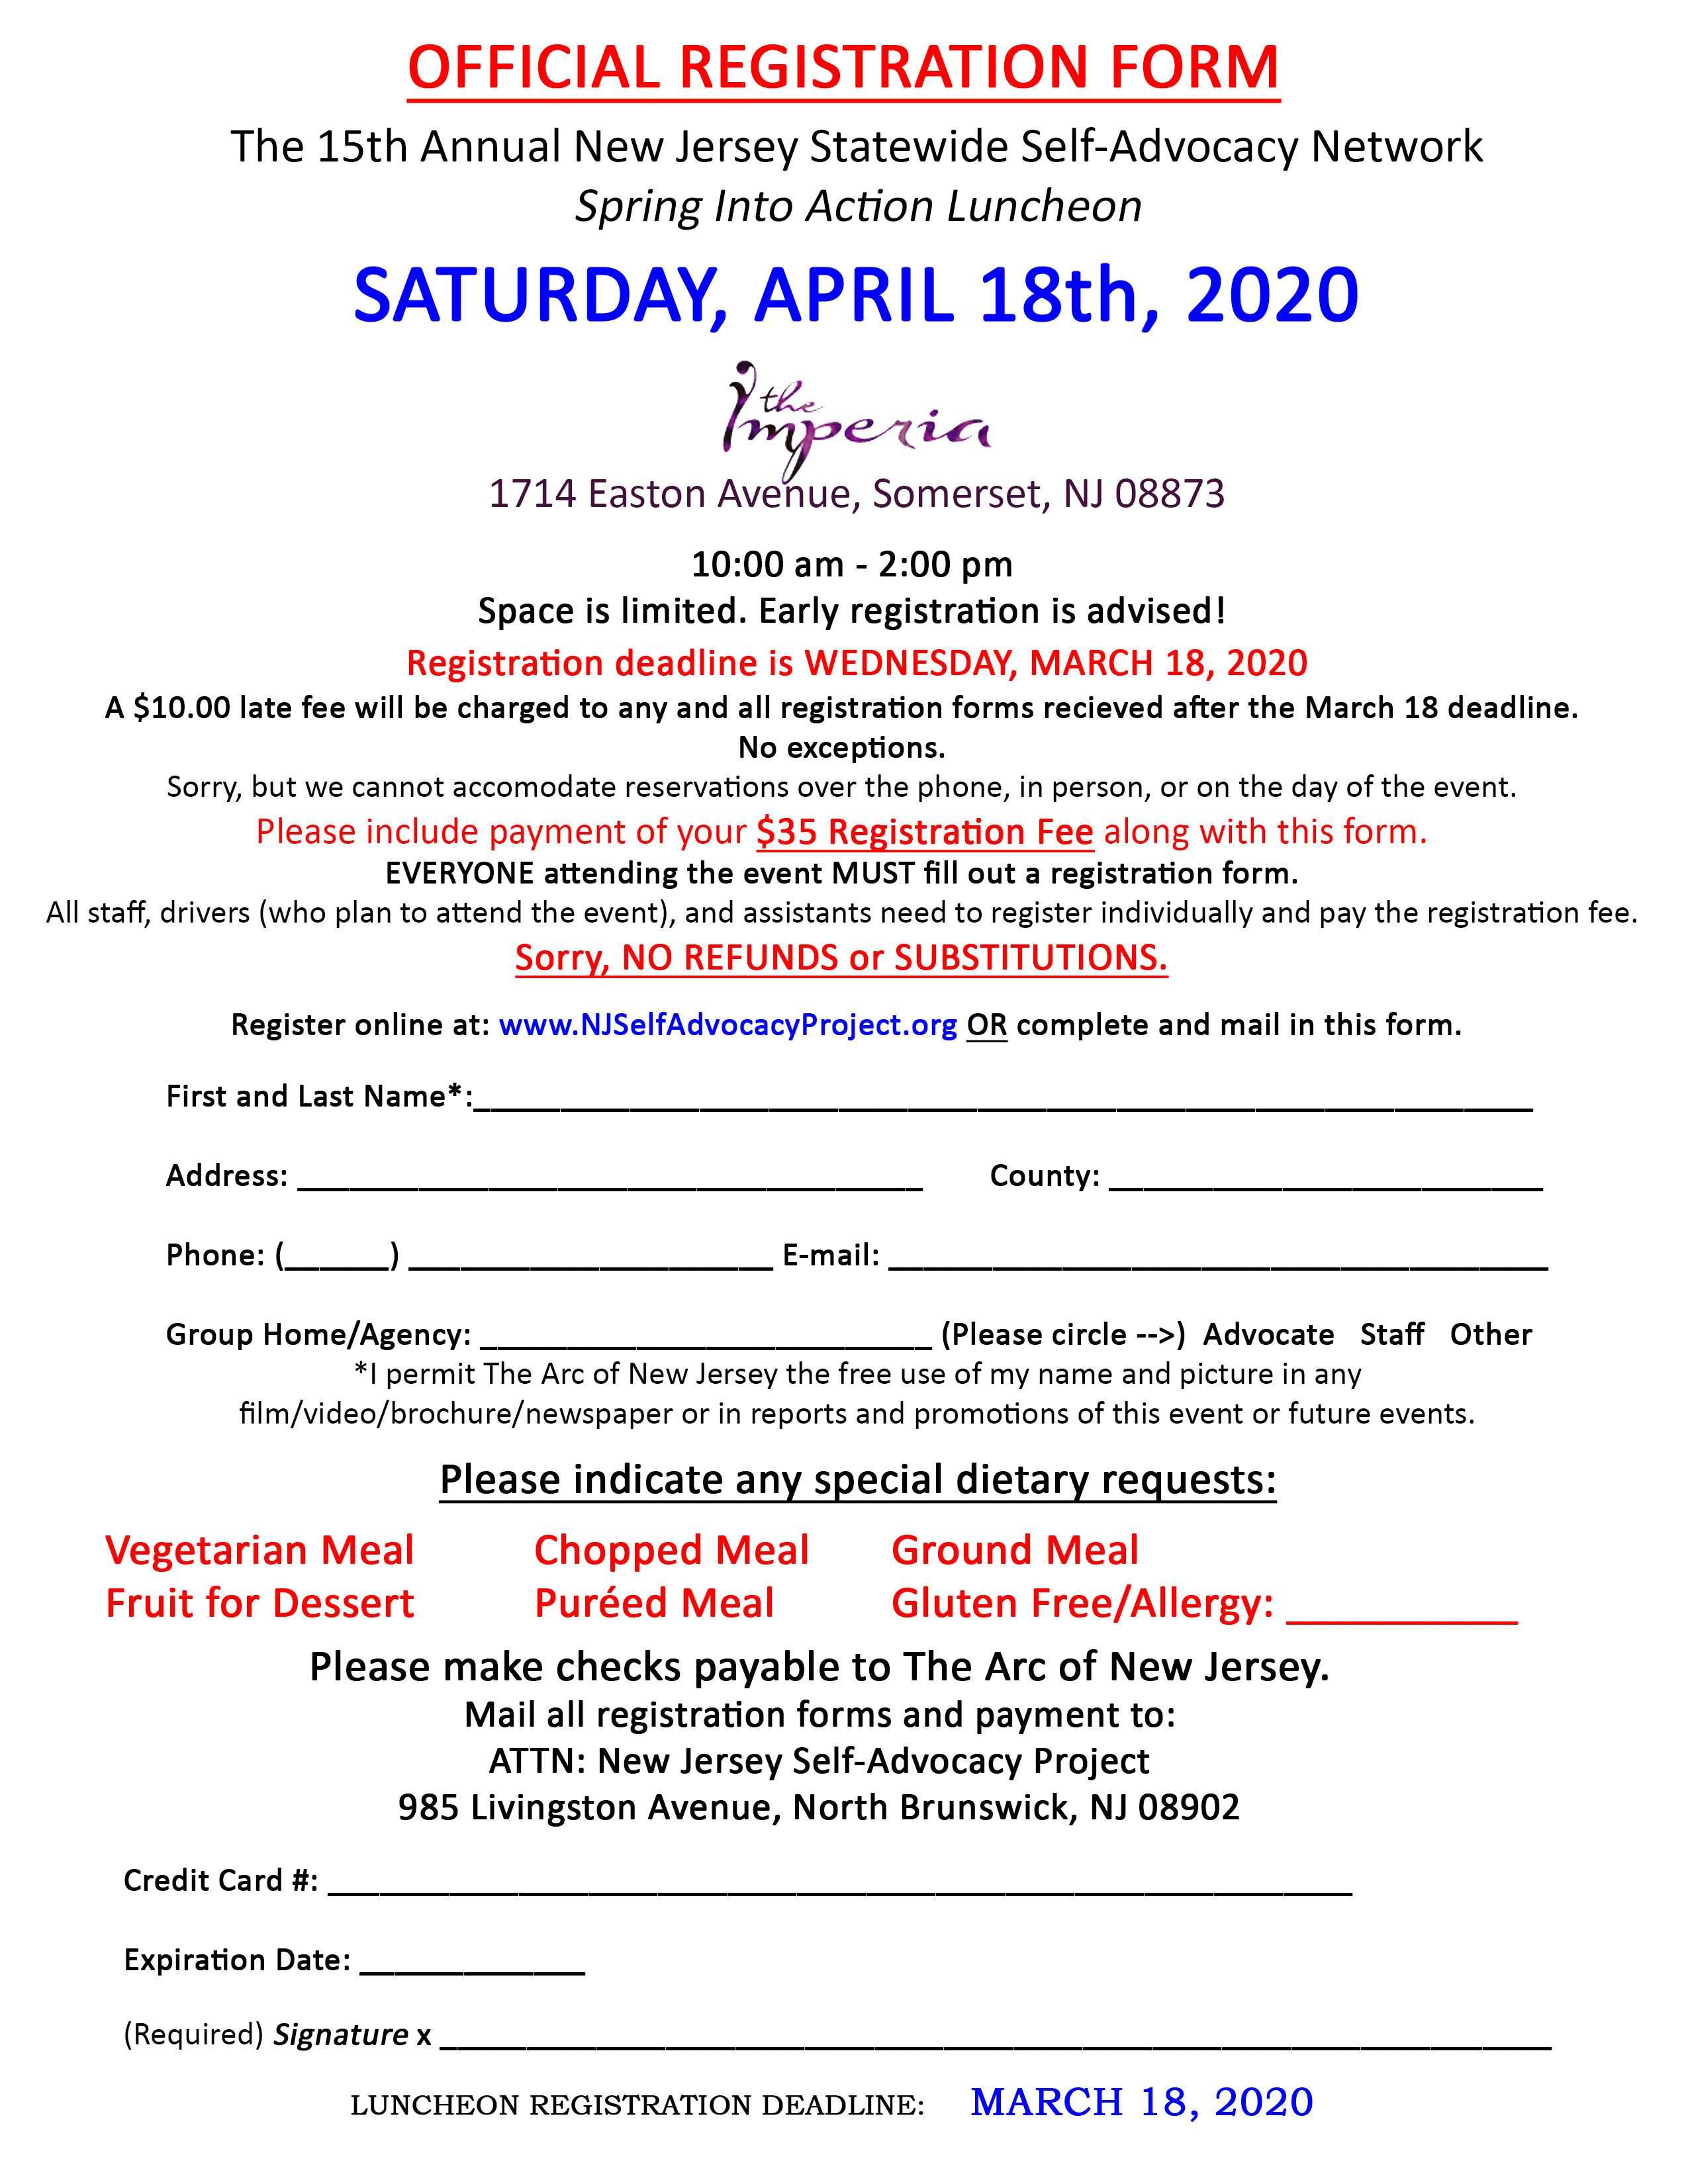 Spring Luncheon Registration